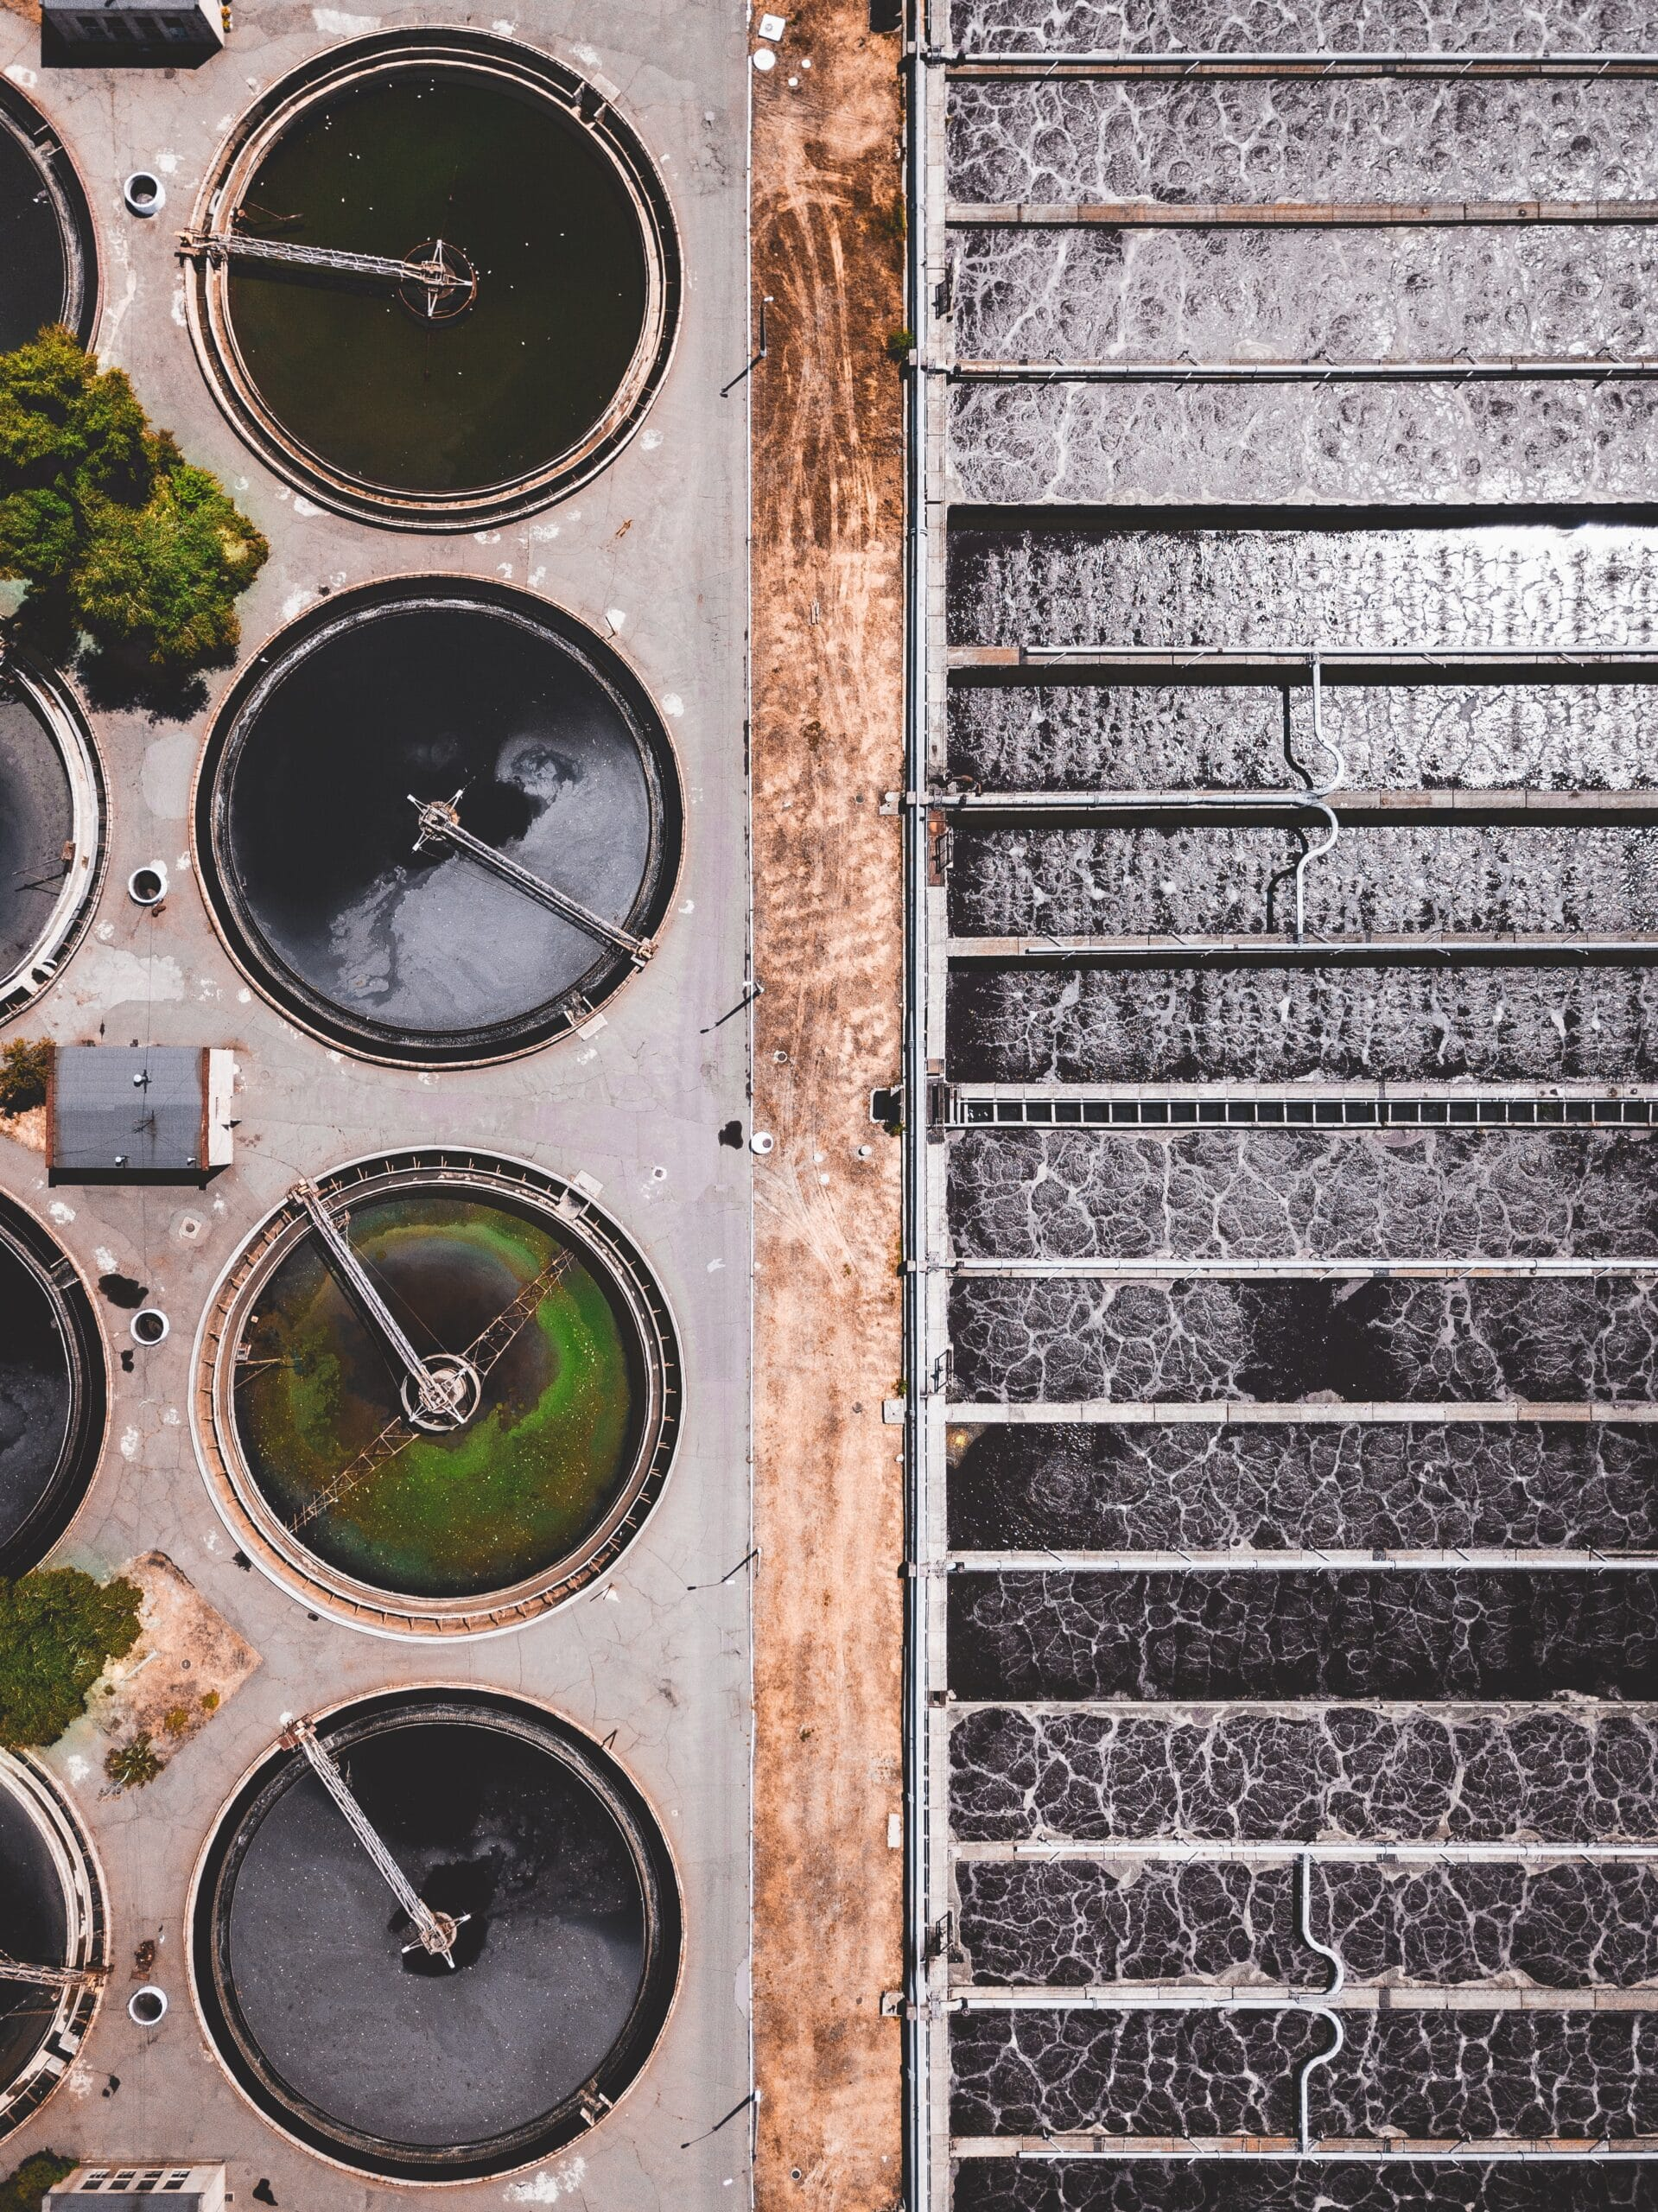 3 Reasons Water Recycling Is Essential for You and the World